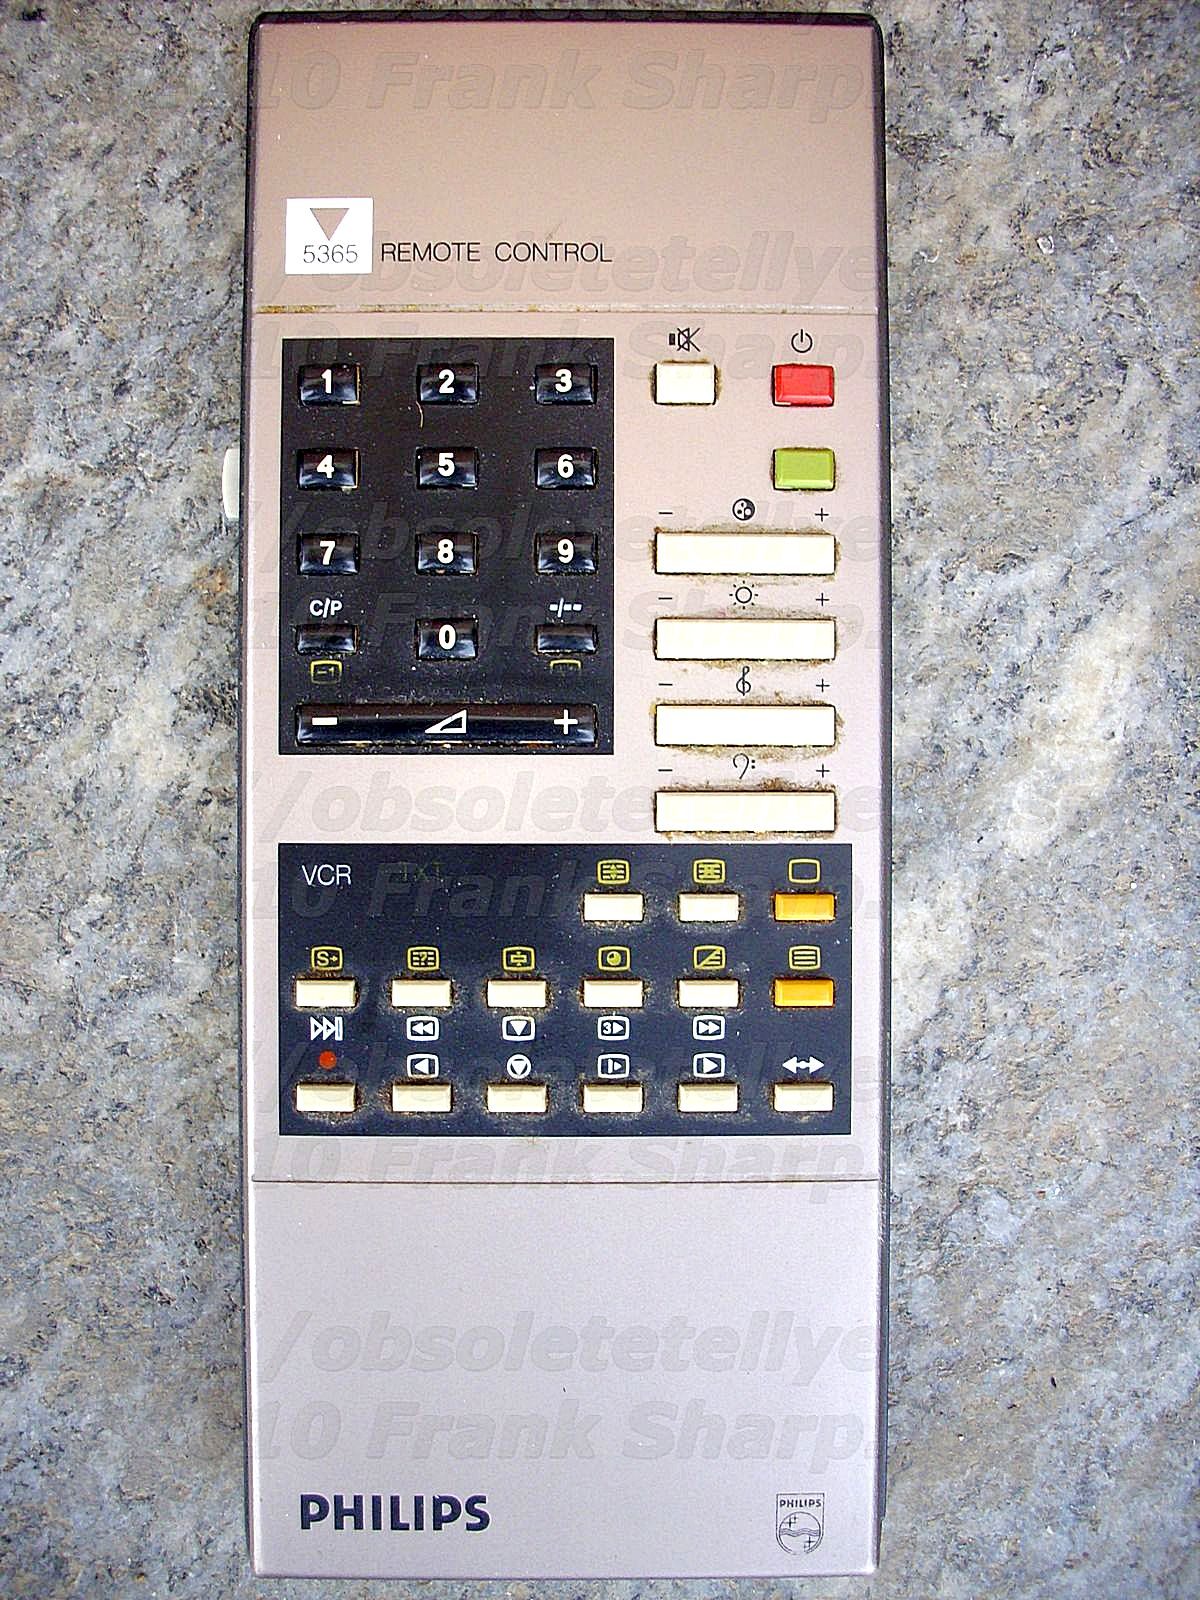 Obsolete Technology Tellye Philips Stereo Receiver V6820 Besides 50 Gfci Breaker Wiring Diagram Furthermore Hot Tub 220 Then Press The Store Button Diamond Symbol Youve Now Locked Vcrs Output As Programme 00 If Customer Decides To Connect His Vcr Via Scart